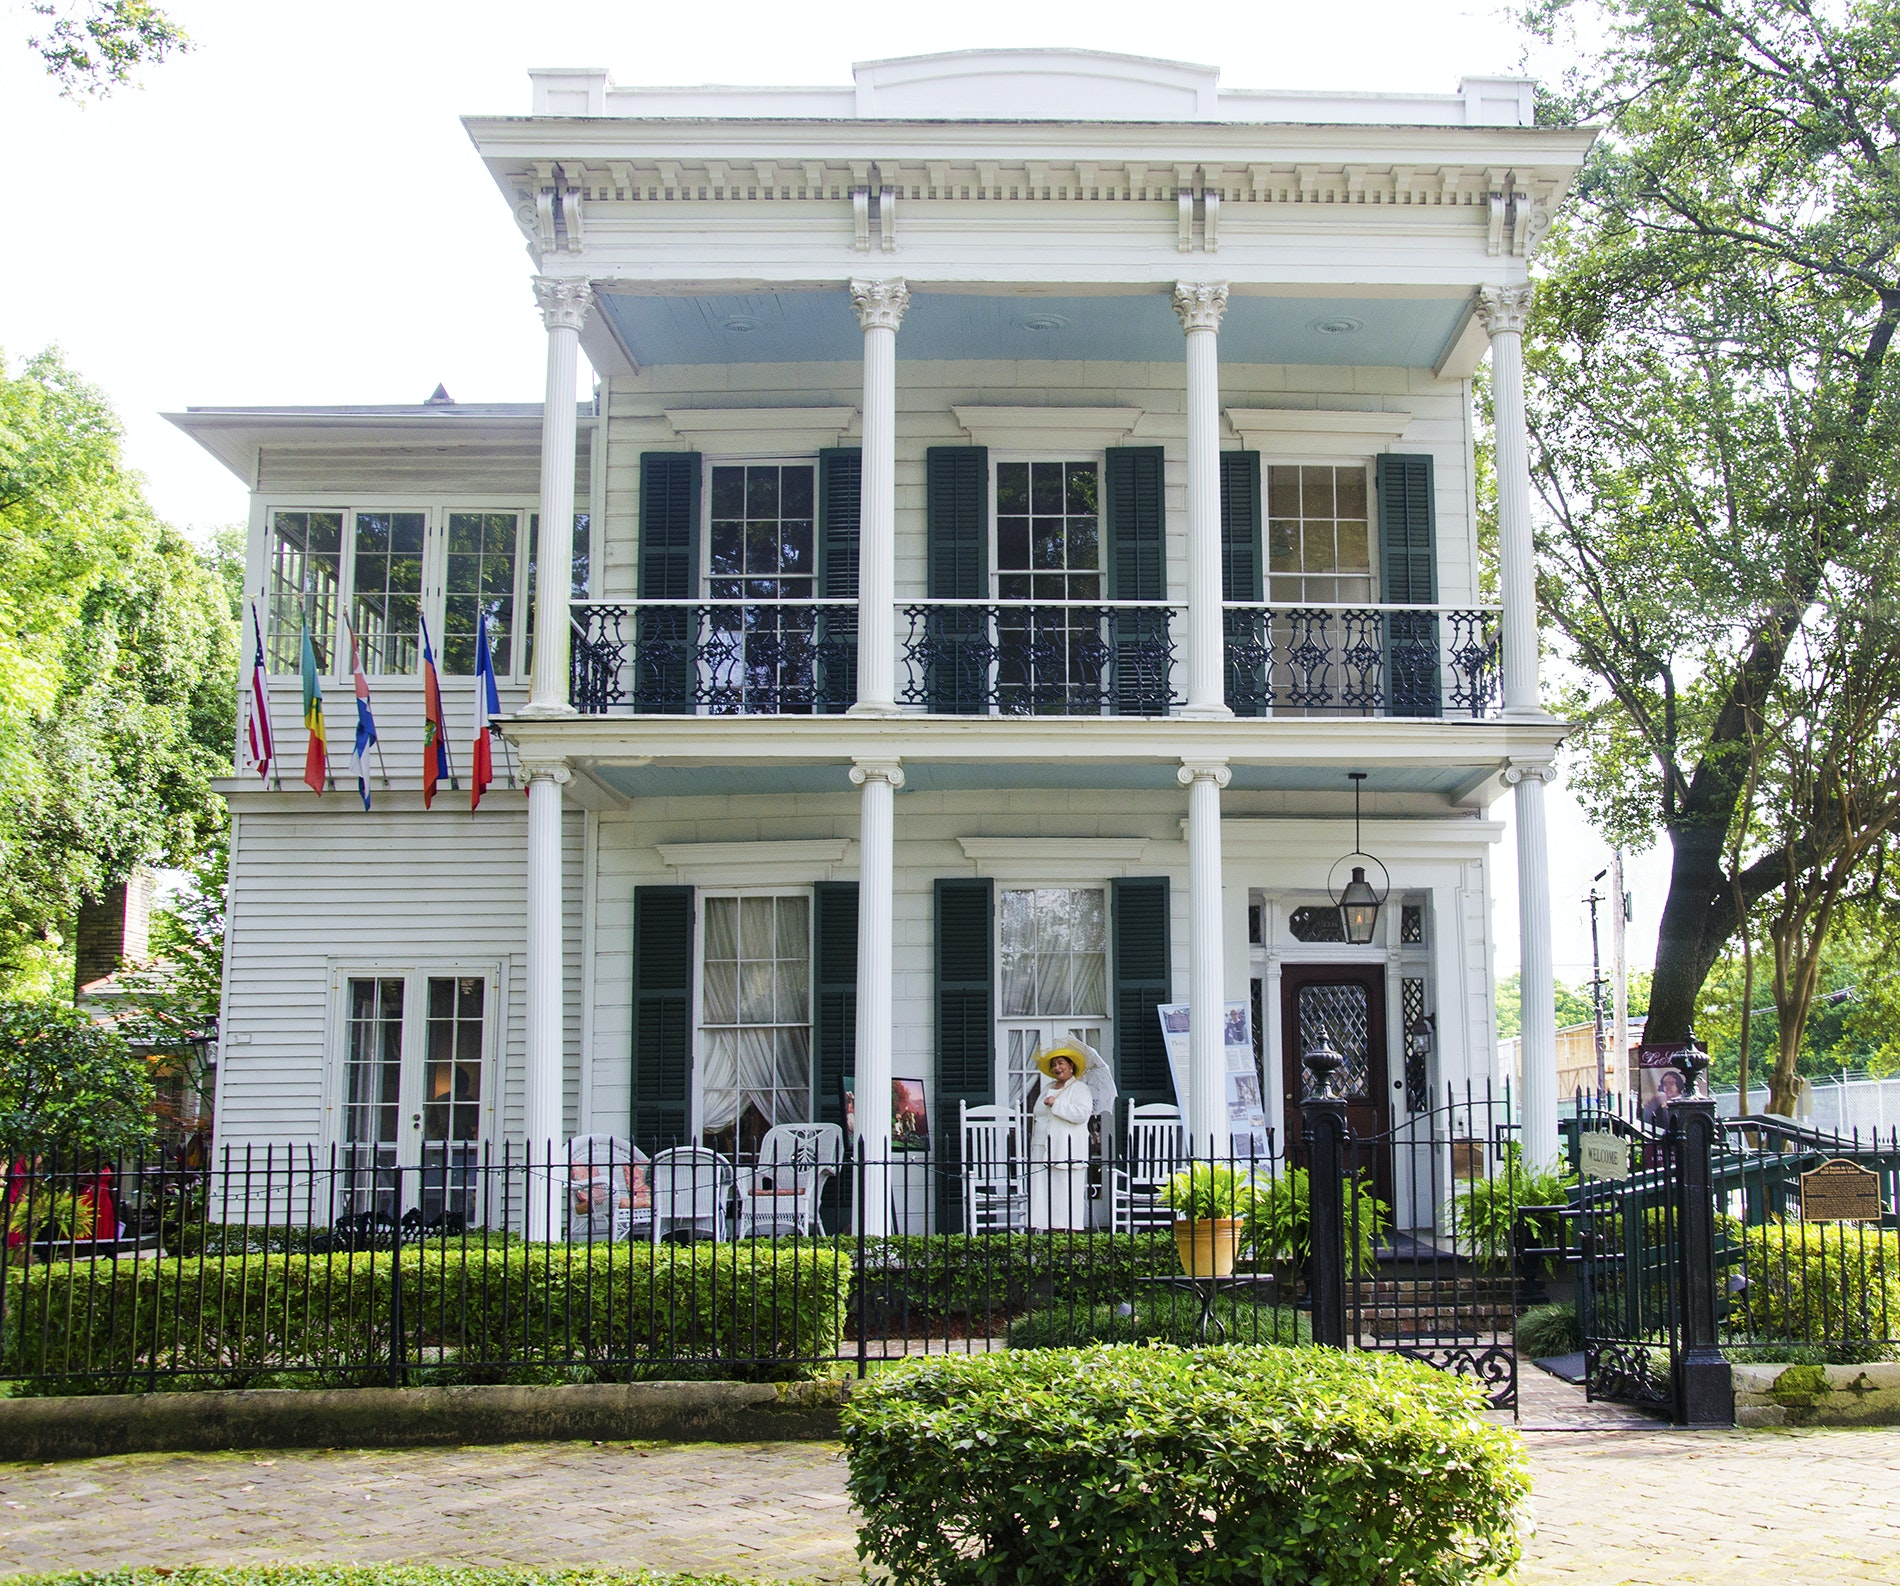 Learn about the journey, heritage, and achievements of the free people of color in New Orleans at Le Musée de F.P.C.